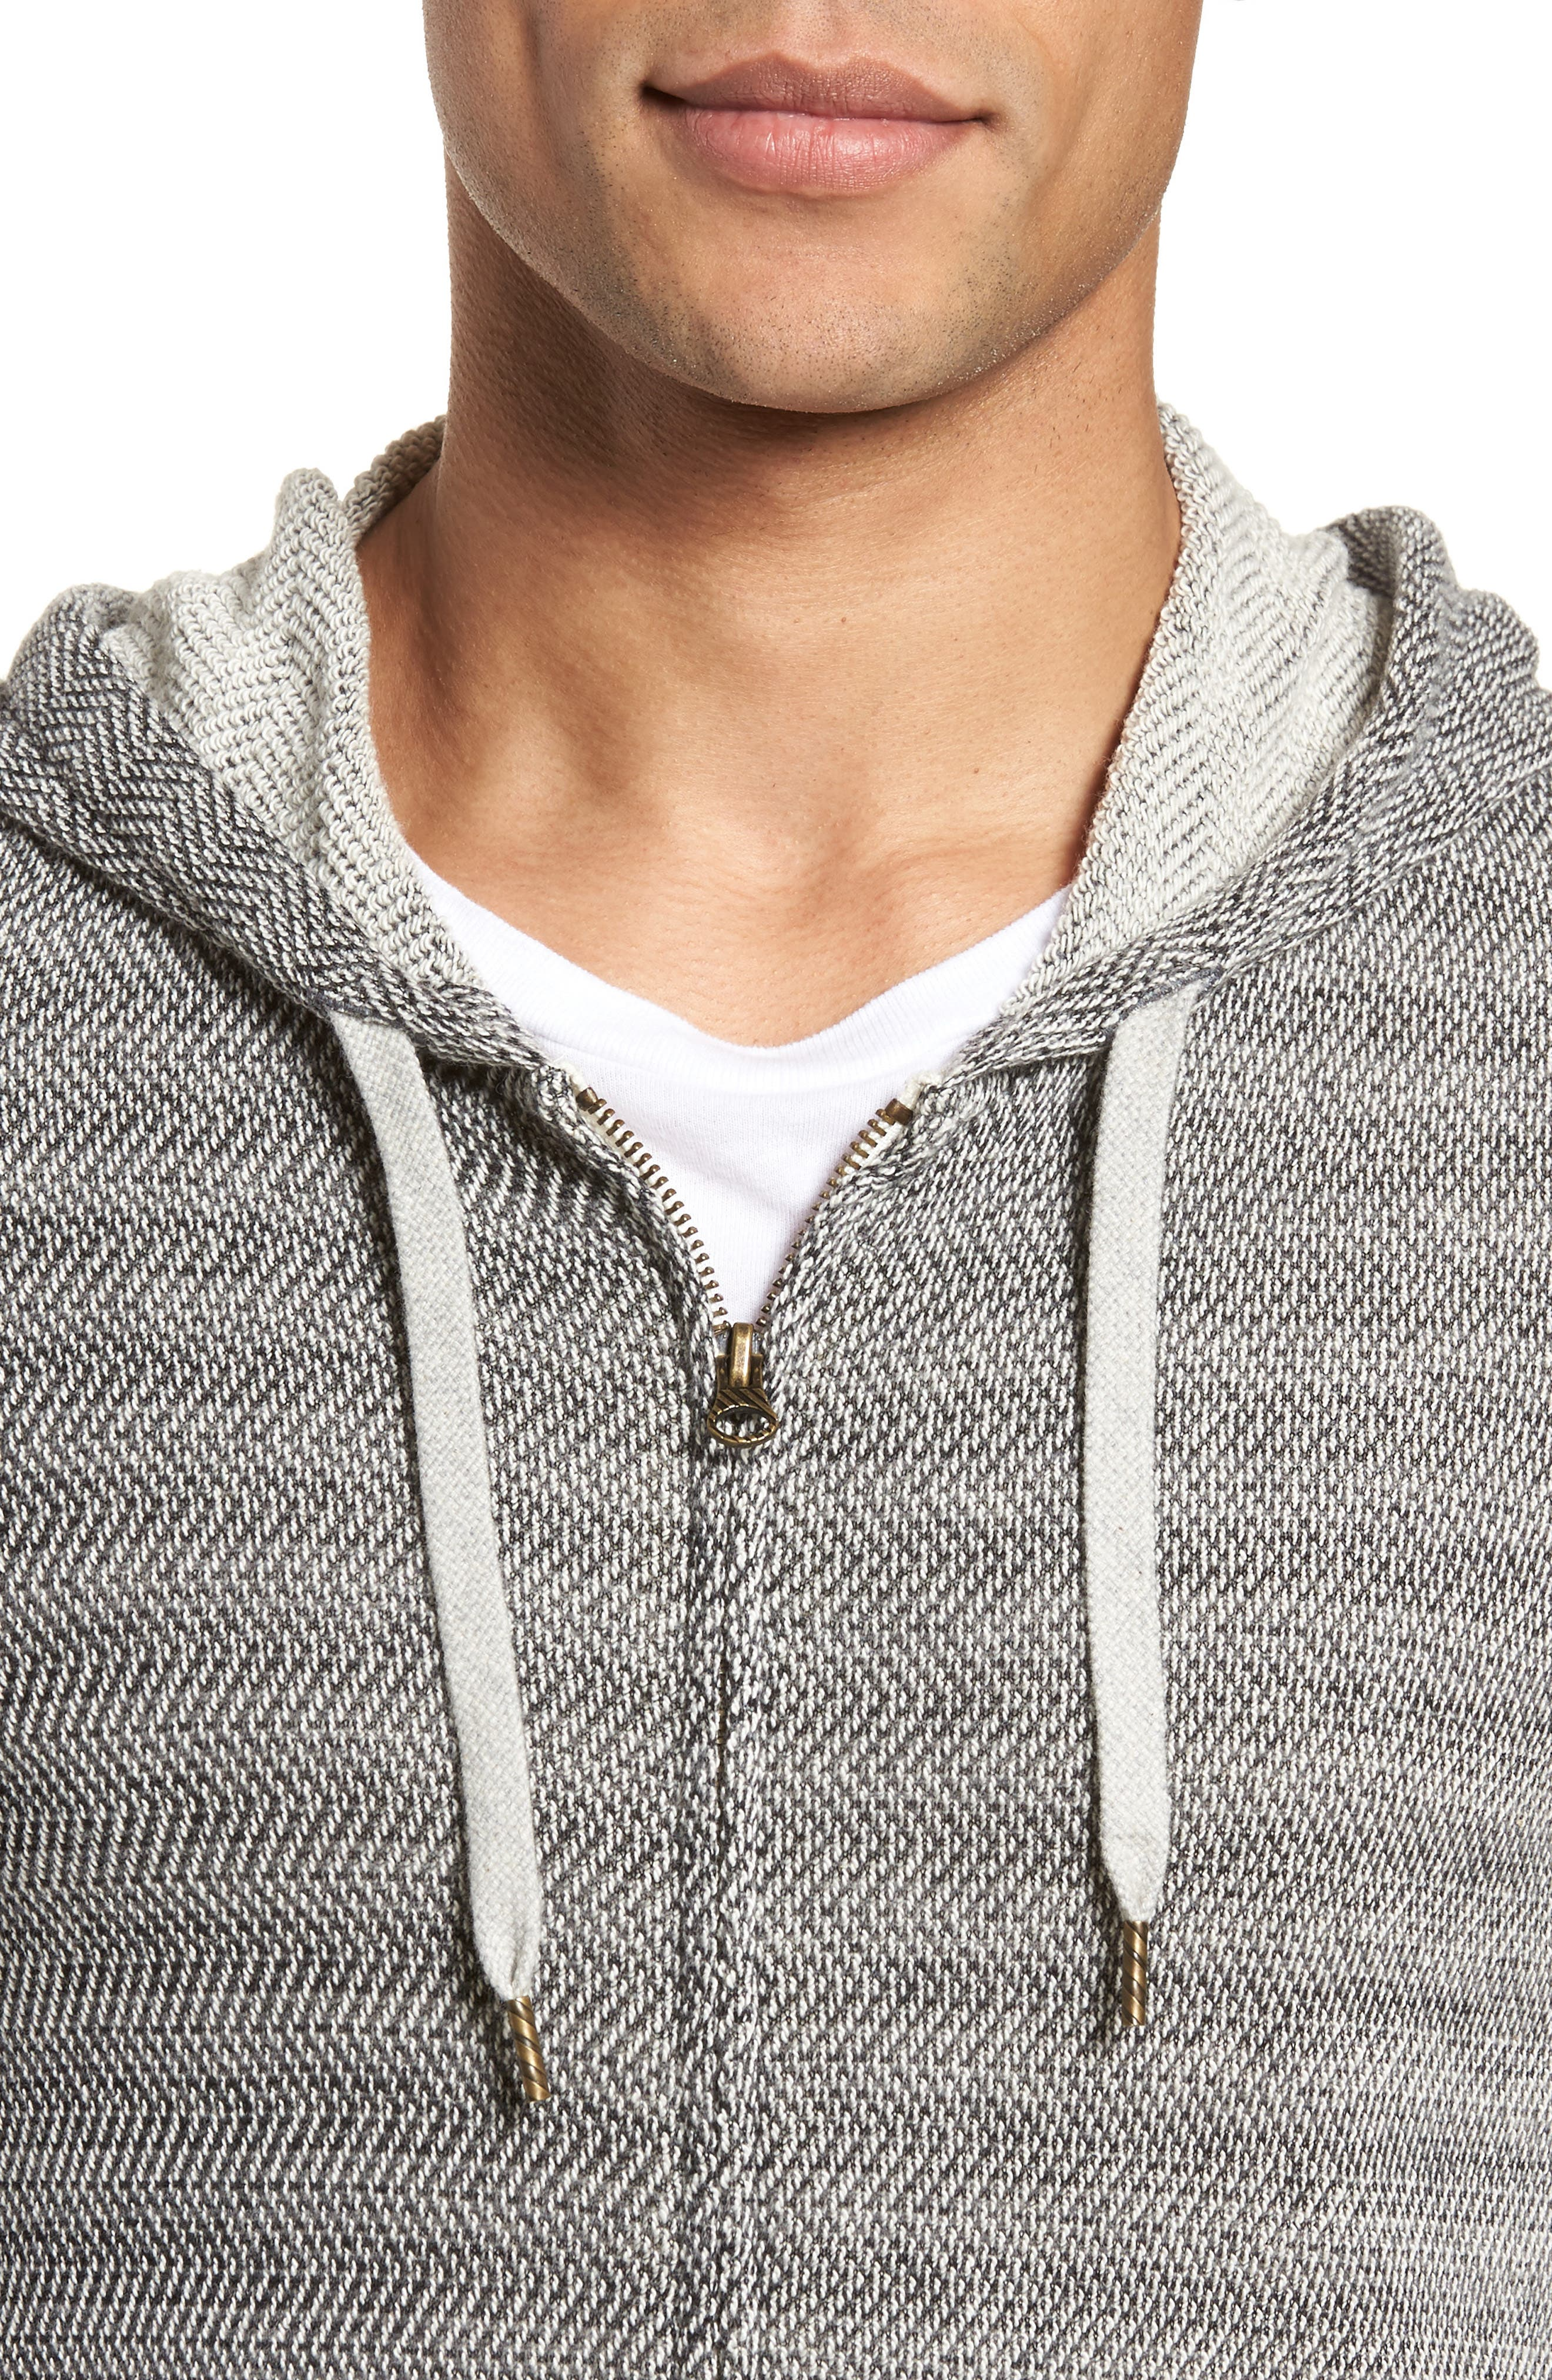 Herringbone Hoodie,                             Alternate thumbnail 4, color,                             010